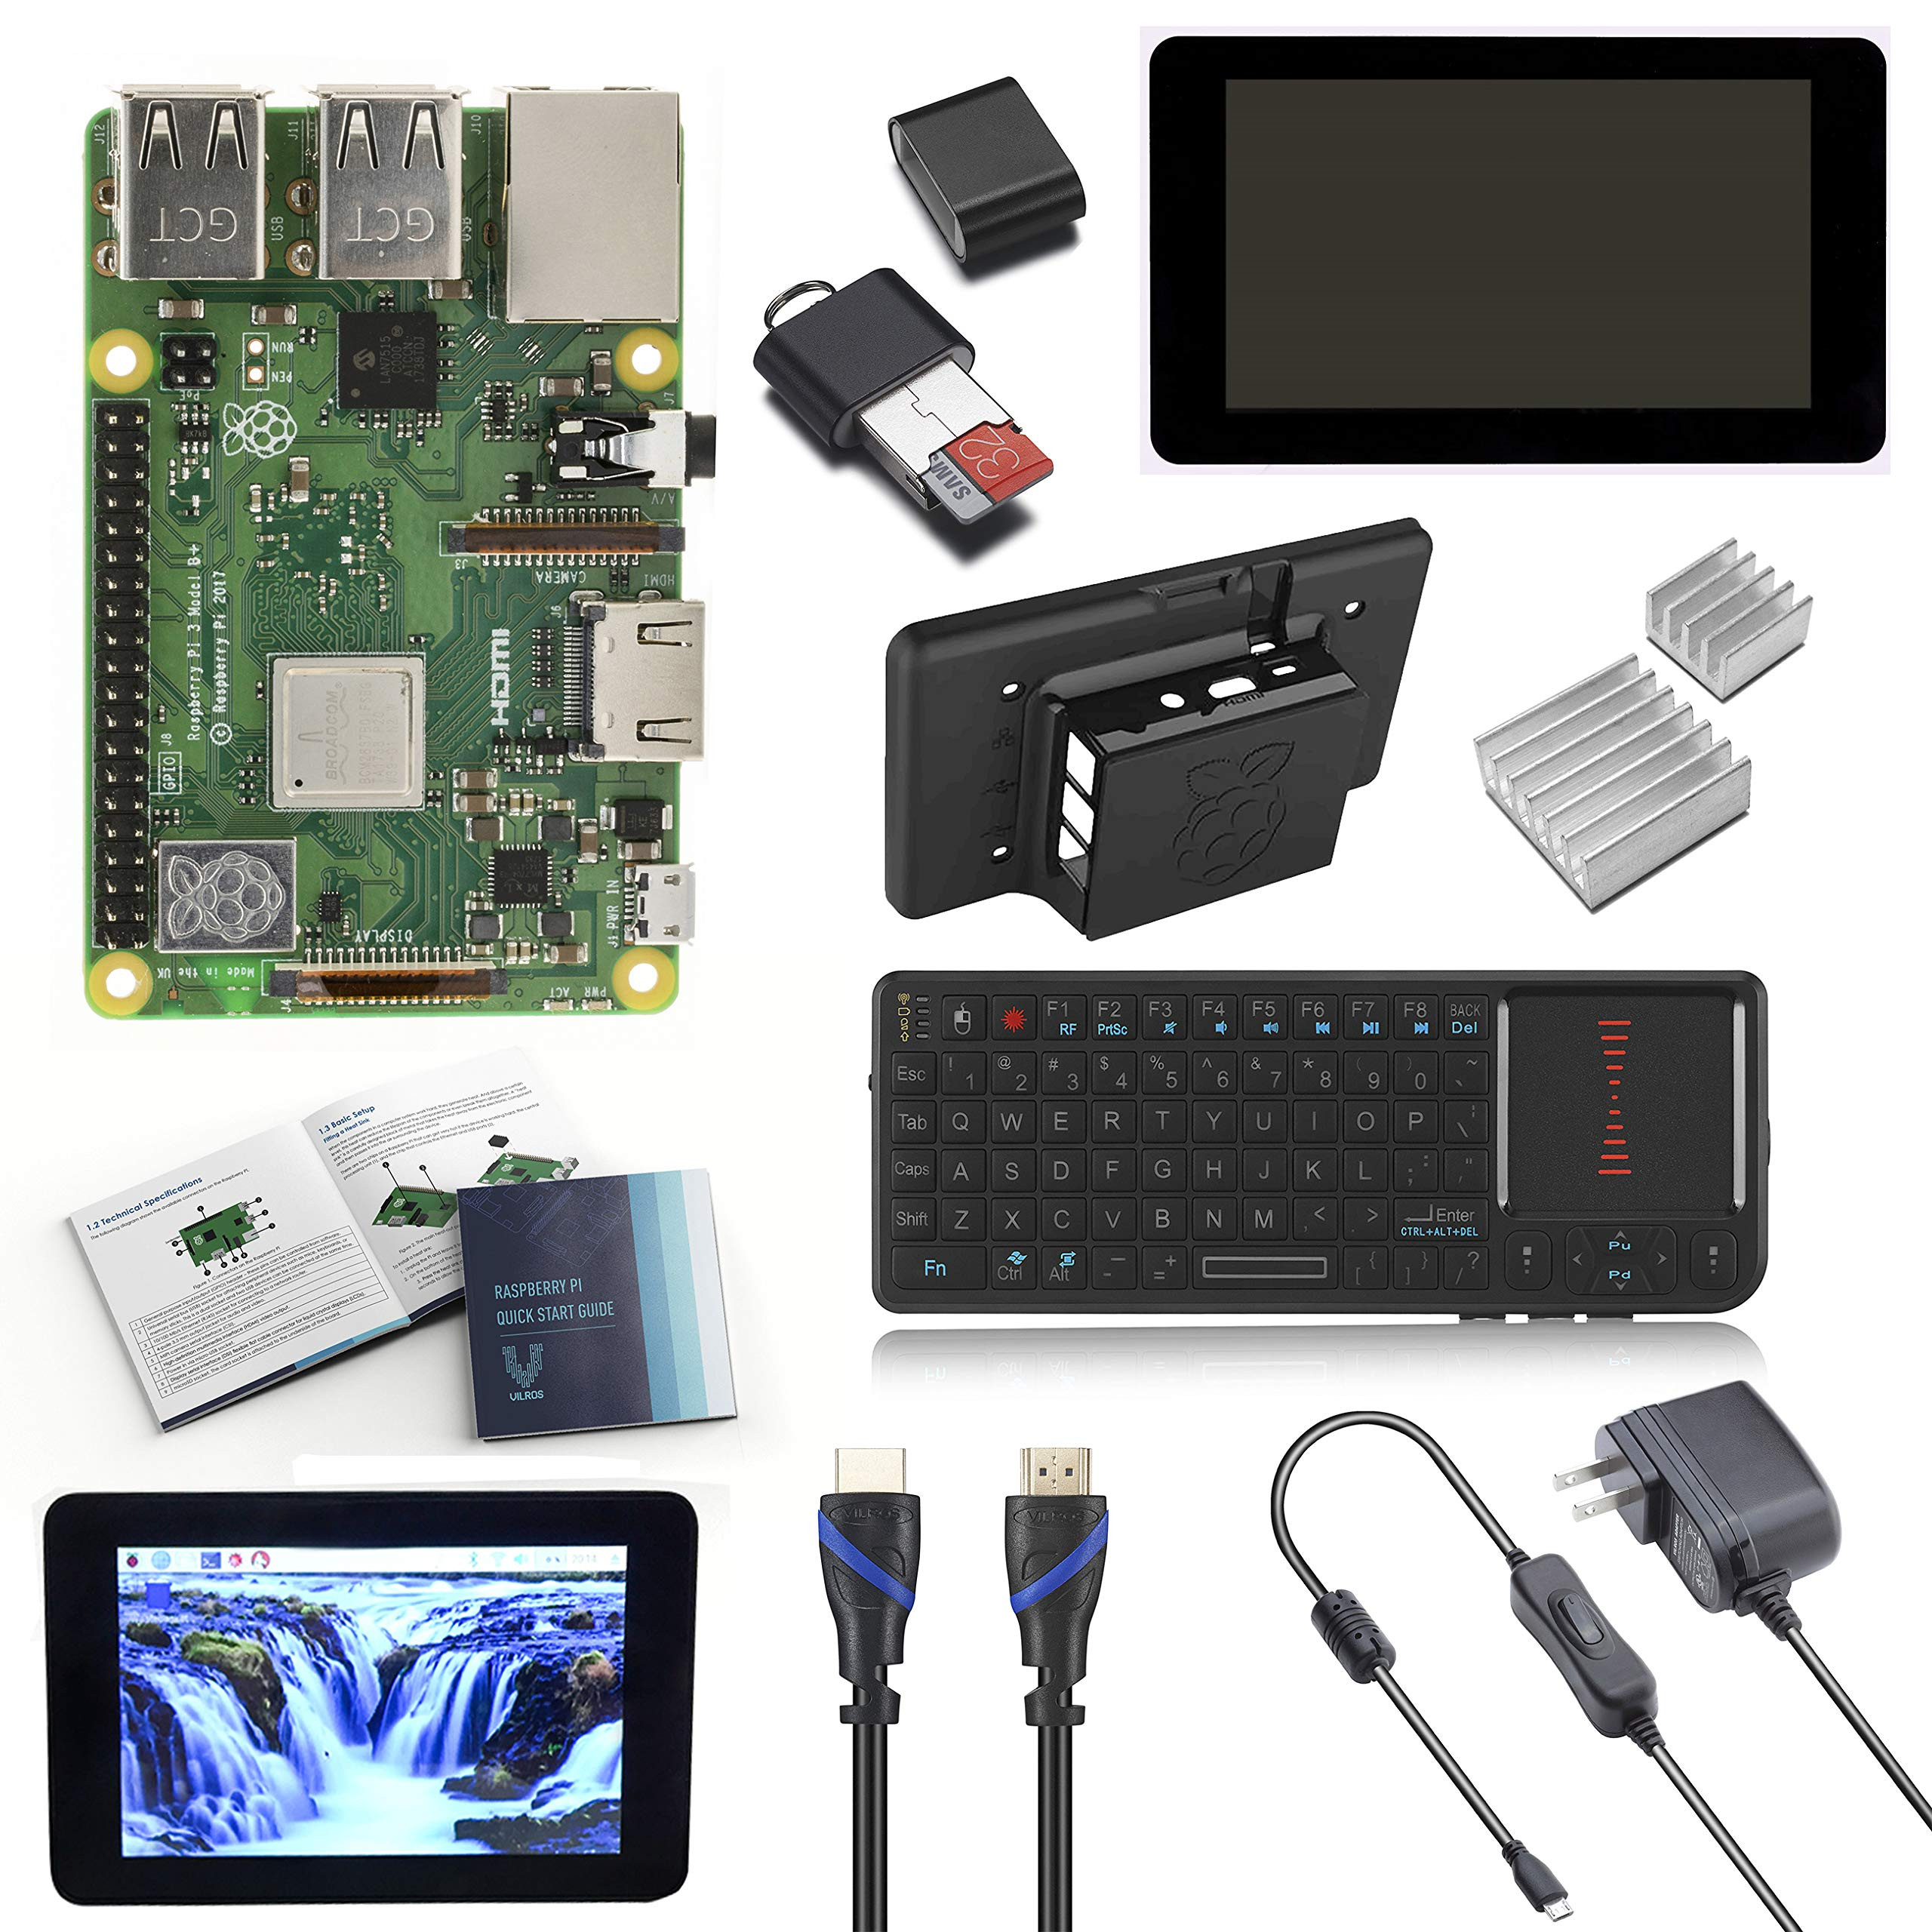 V-Kits Raspberry Pi 3 Model B+ (Plus) Complete Starter Kit with 7'' LCD  Touchscreen Monitor & Mini Keyboard with Touchpad Combo